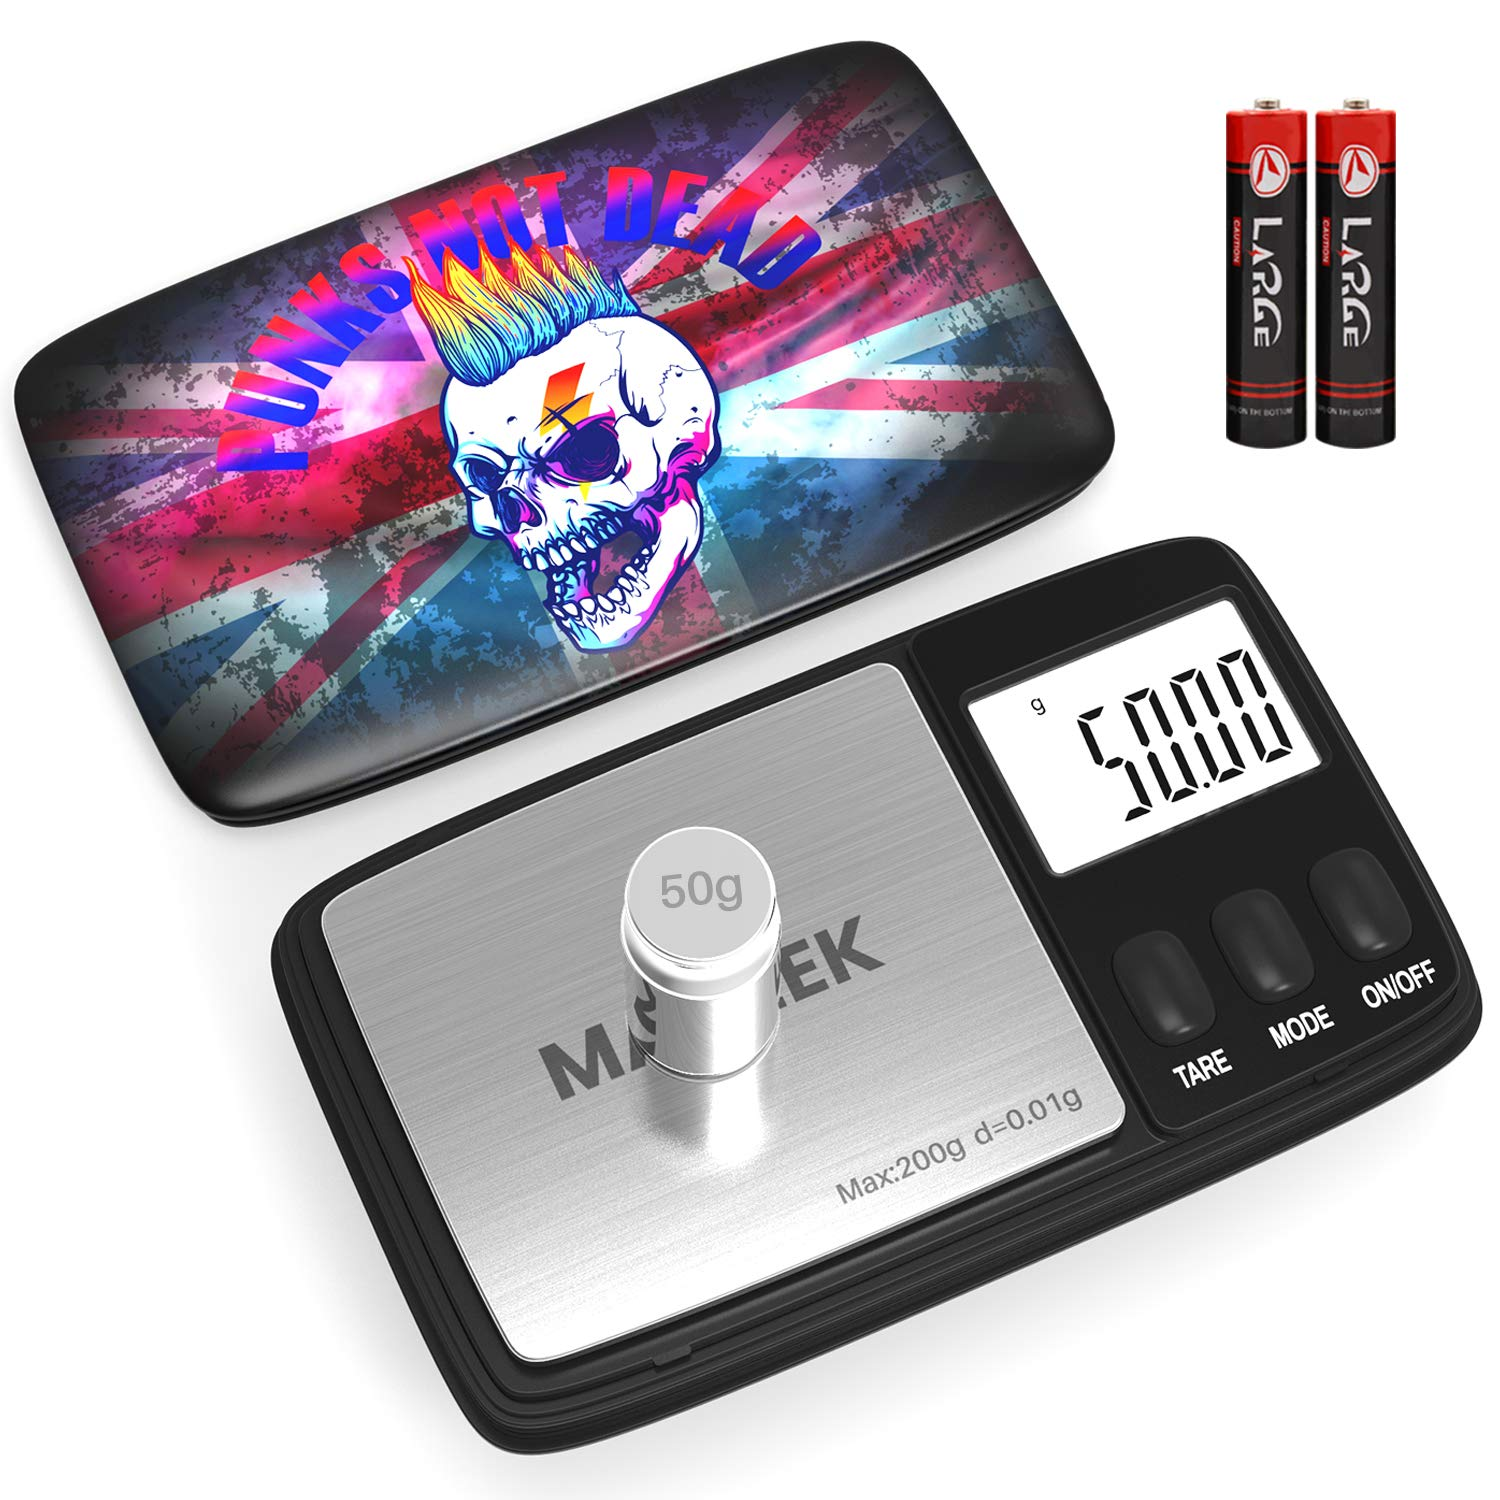 Gram Scale, Scales Digital Weight Grams 200 X 0.01g with 50g Weight Calibration, Digital Scale Grams and Ounces 6 Units Conversion, Precision Pocket Scale, Auto-Off, Tare Function (Battery Included)